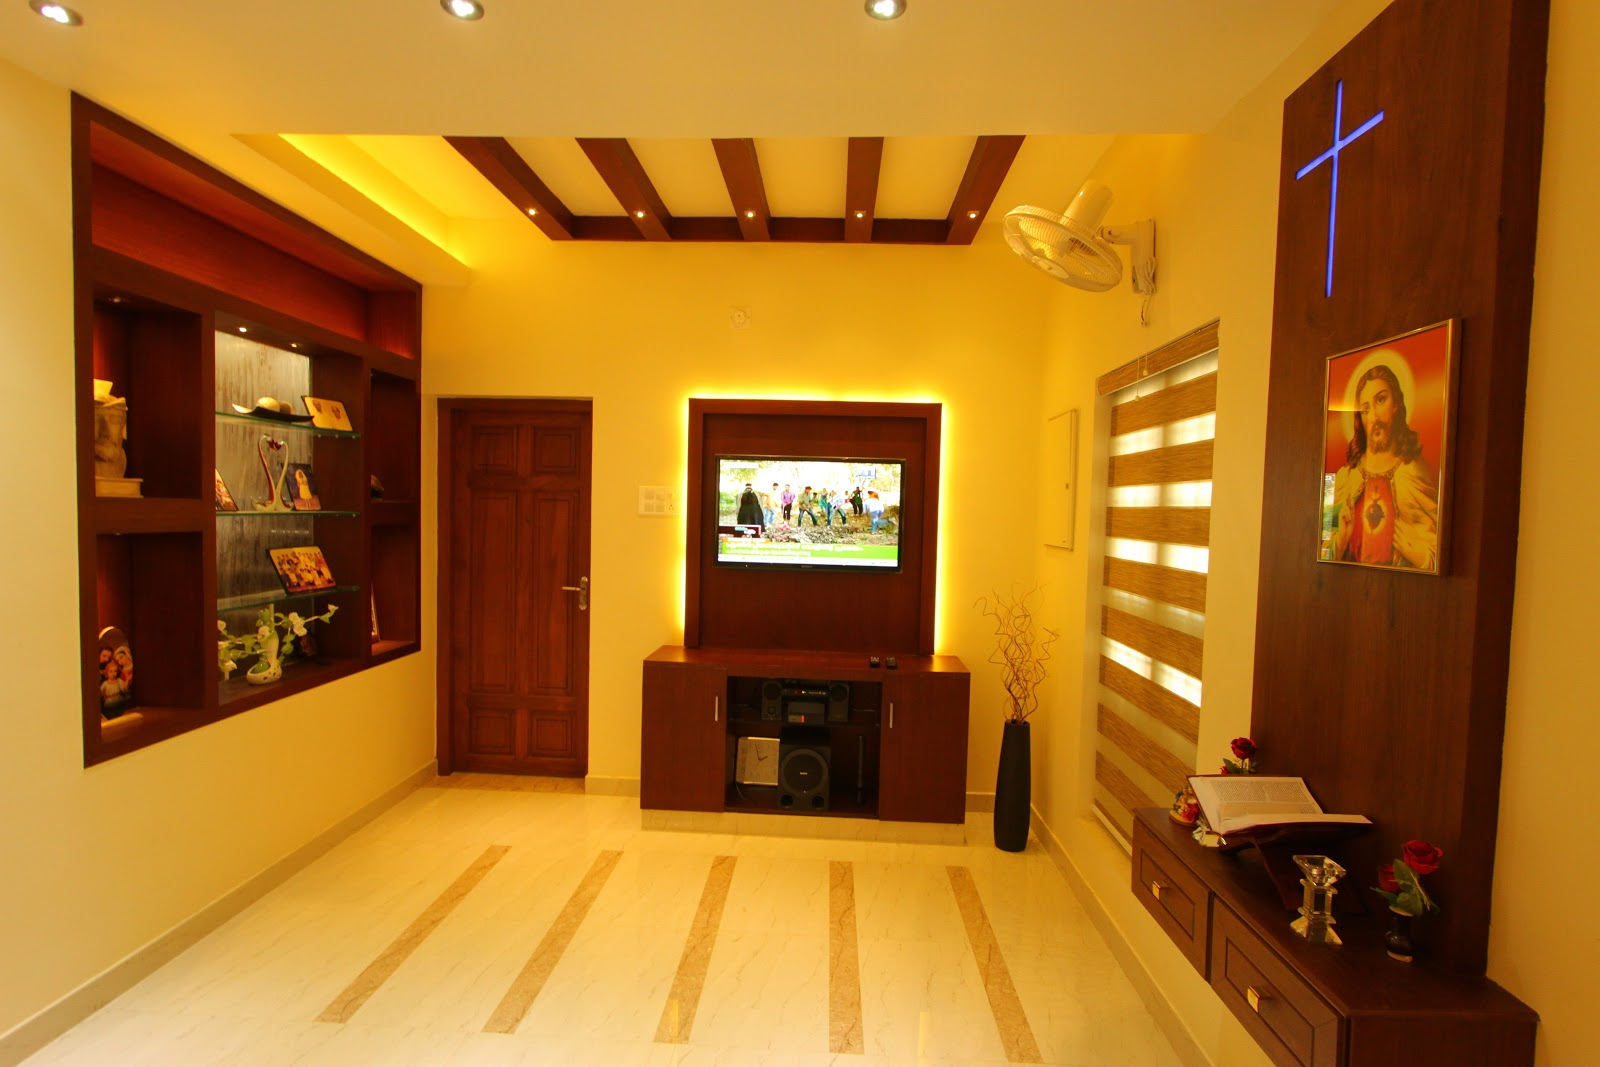 Shilpakala interiors award winning home interior design for Residence interior design